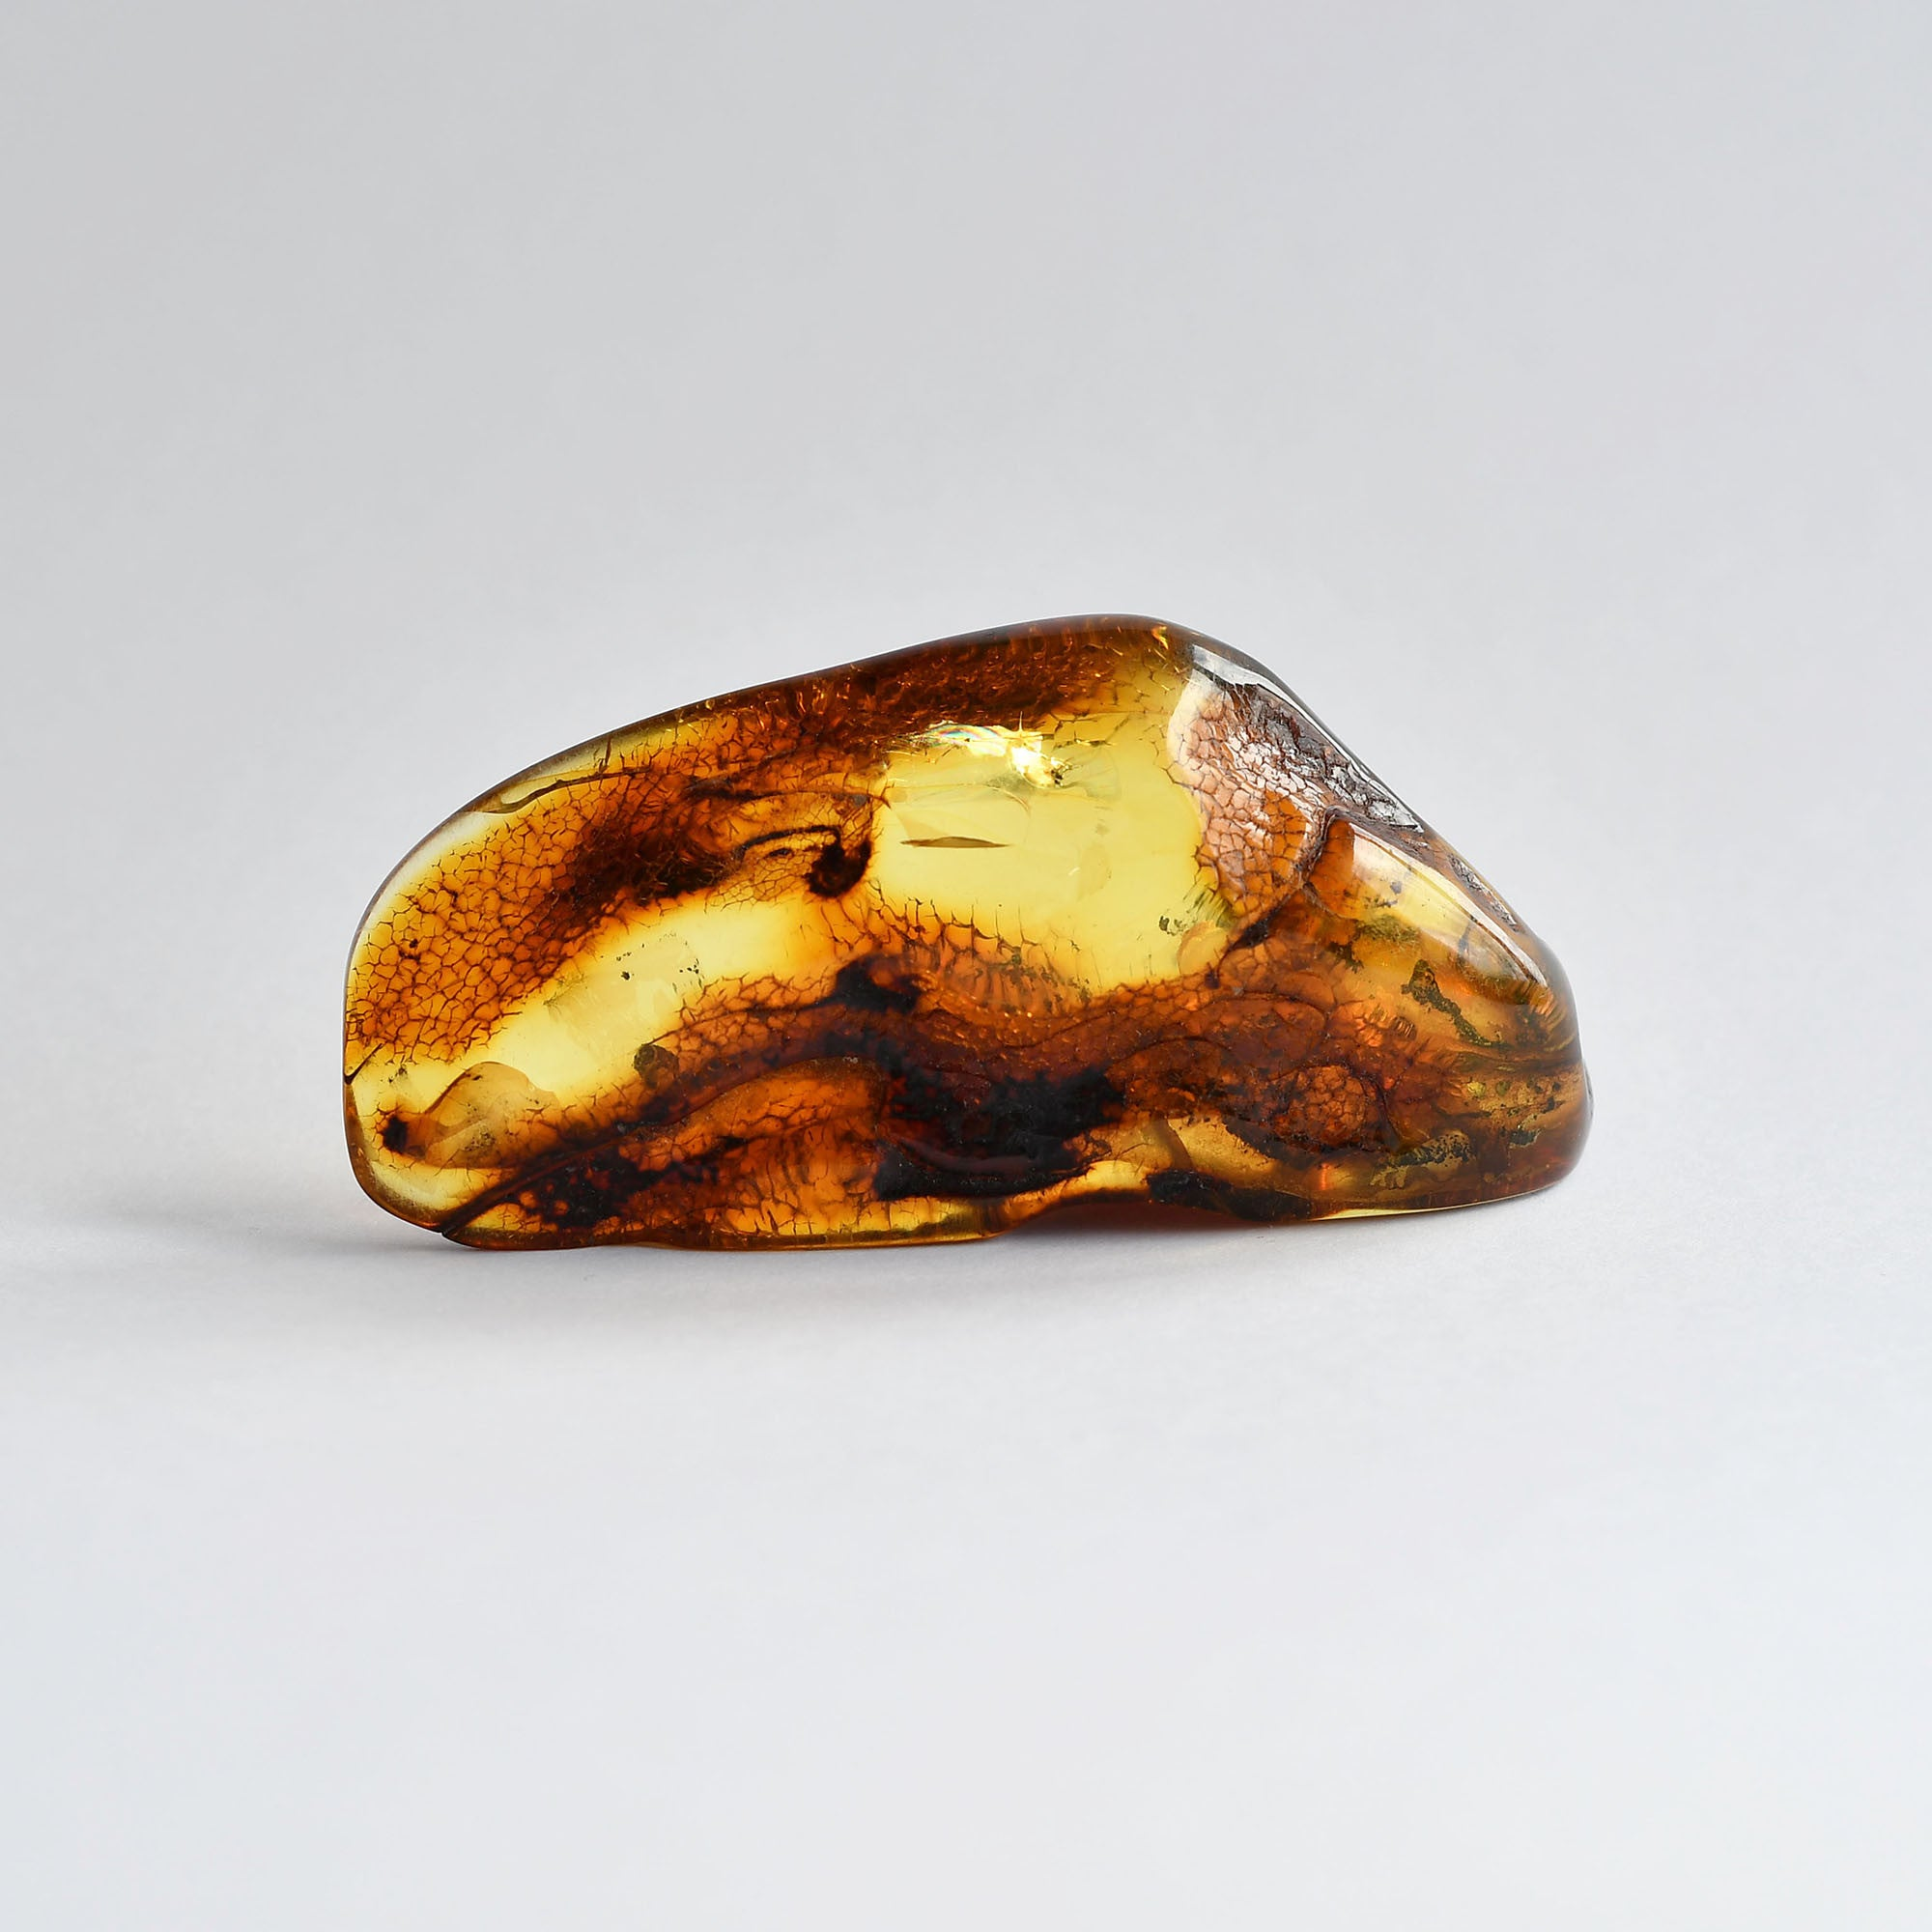 Transparent amber stone with an insect